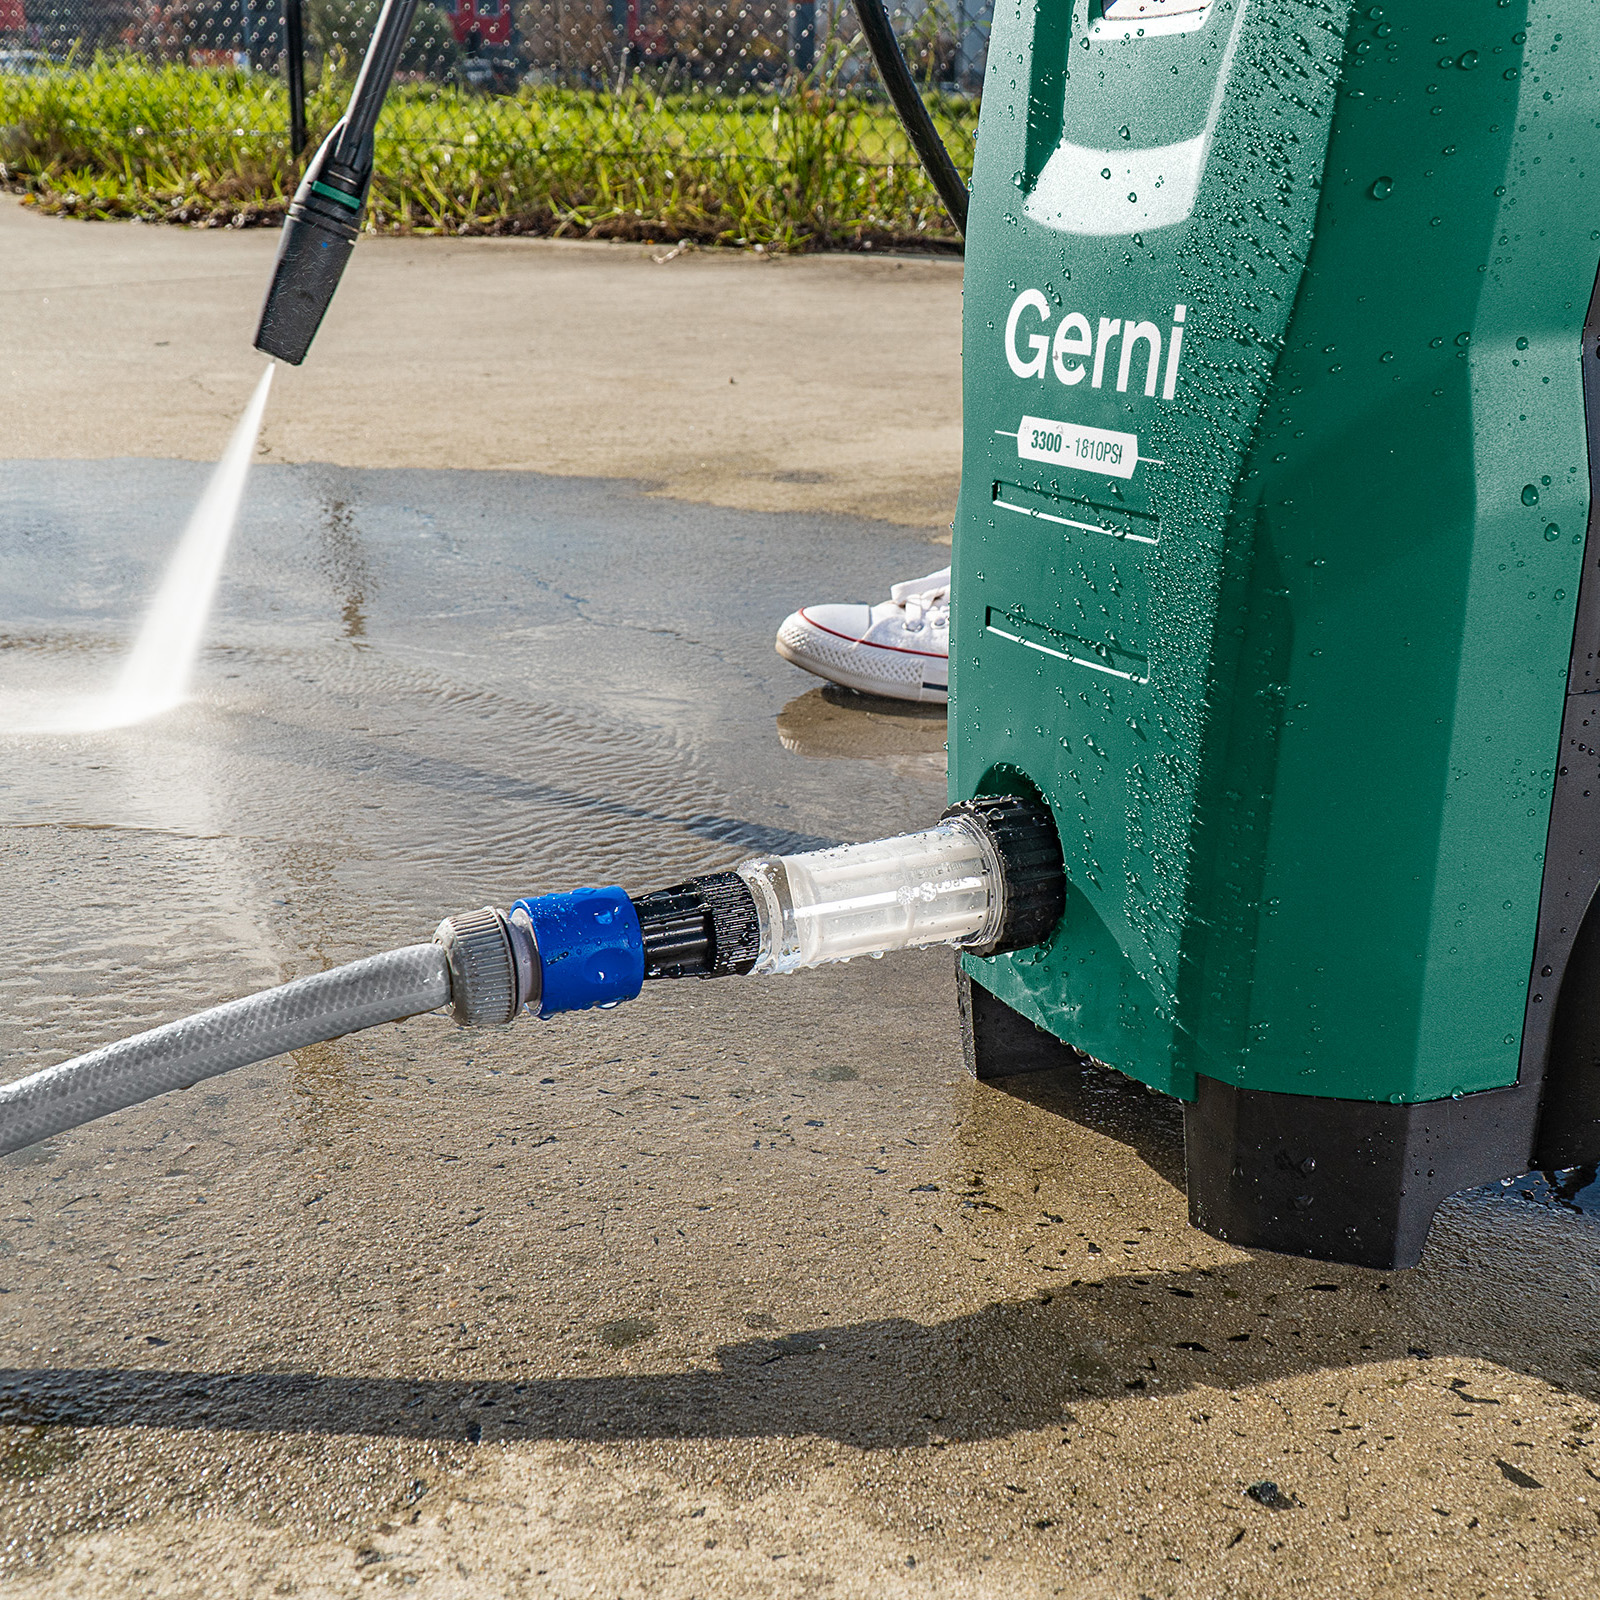 Gerni Water Filter - Hose Connection